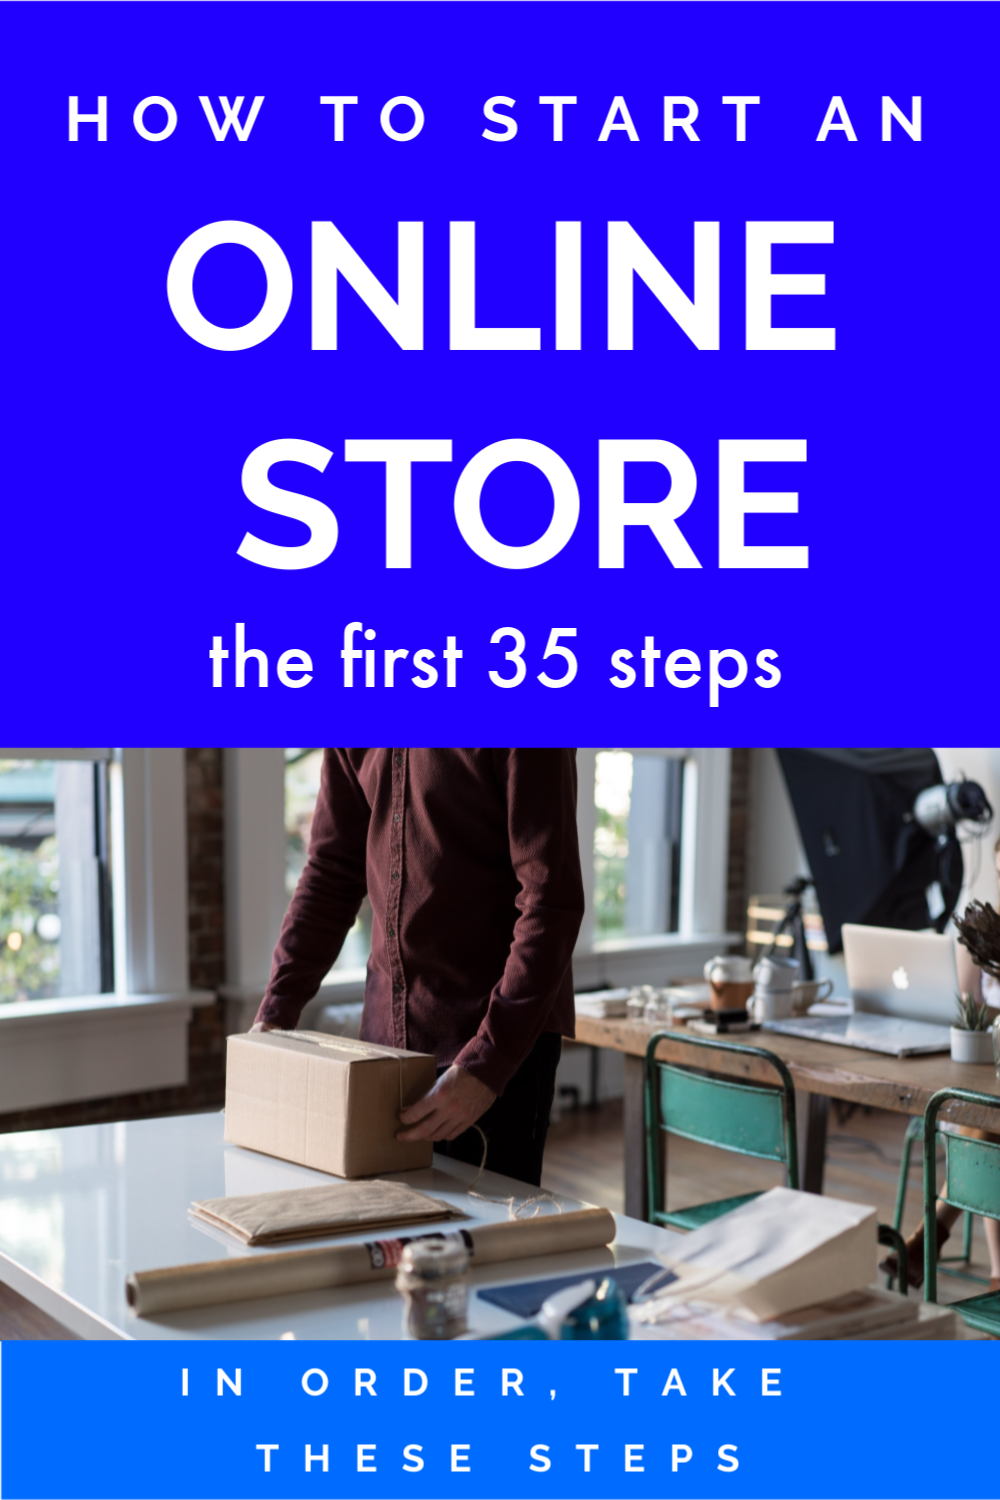 how-to-start-your-own-online-store-step-by-step-guide.png